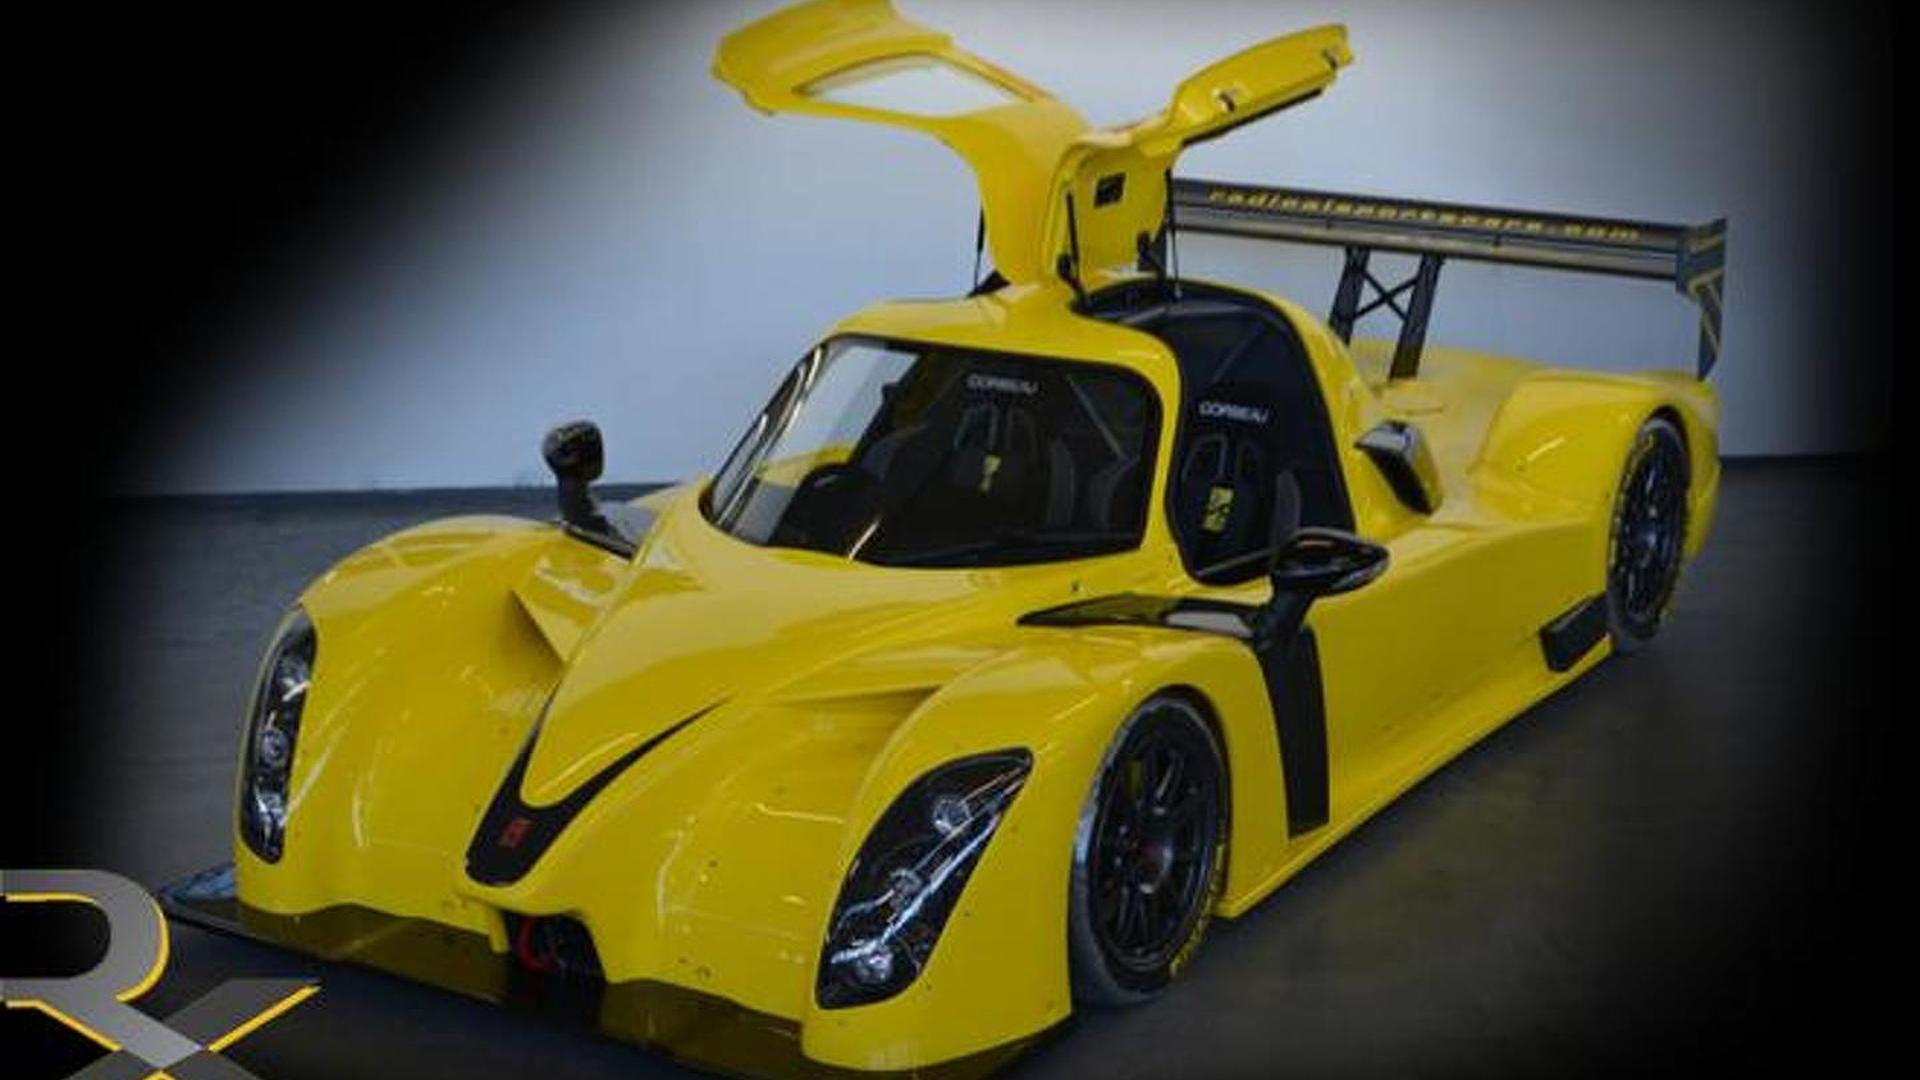 0a5f9c6d4 XCAR takes a look at the Radical RXC [video]